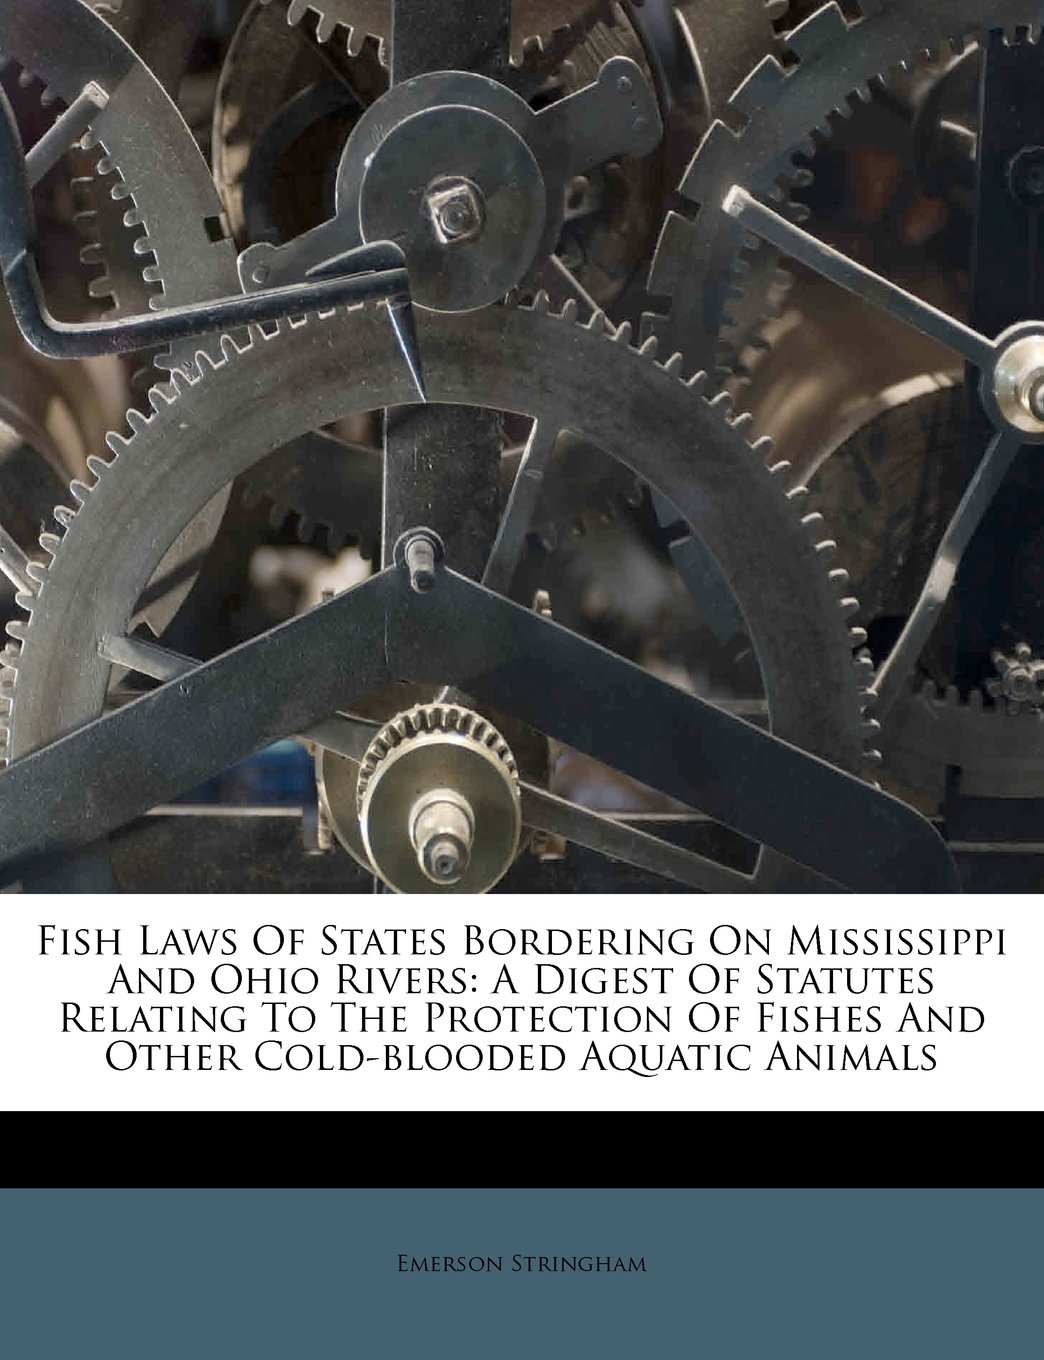 Download Fish Laws Of States Bordering On Mississippi And Ohio Rivers: A Digest Of Statutes Relating To The Protection Of Fishes And Other Cold-blooded Aquatic Animals ebook